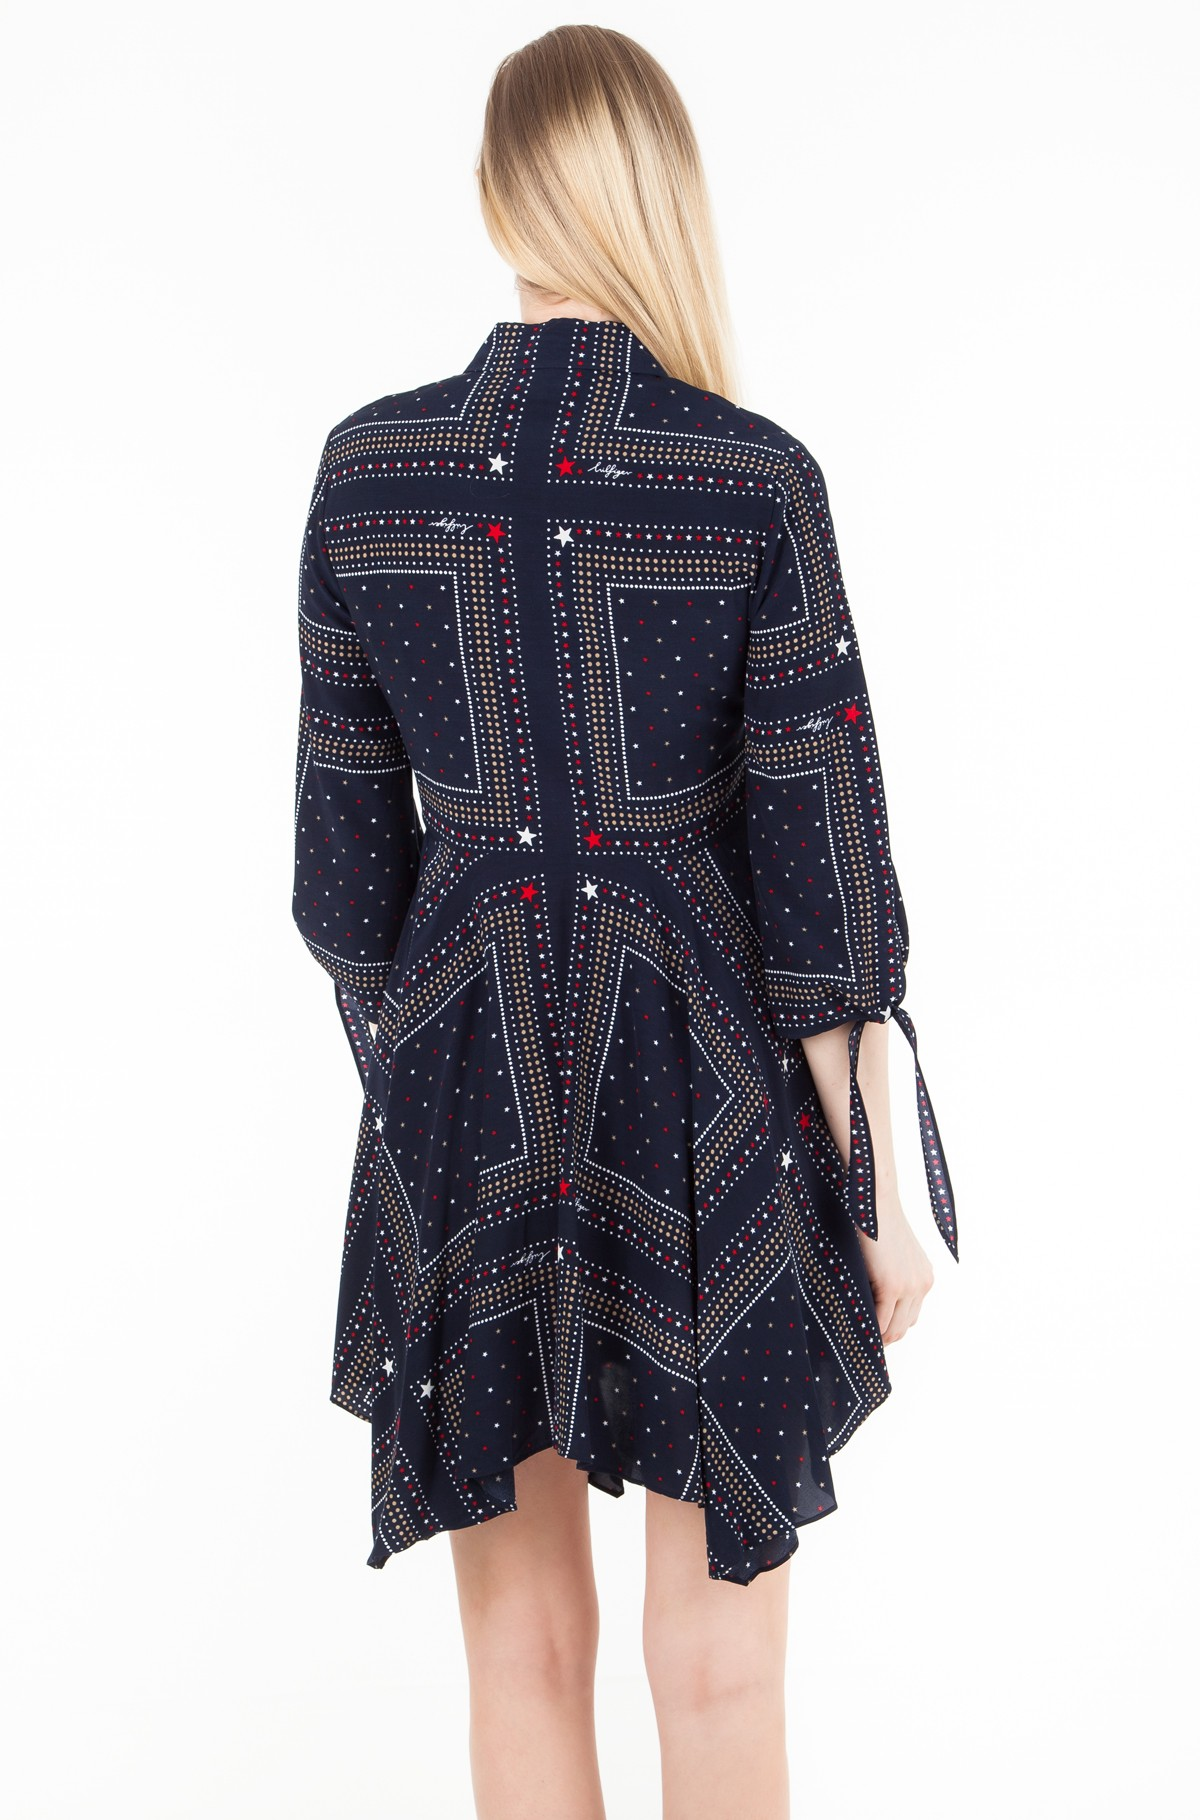 new release low price sale newest Dress HOGGAN DRESS 3/4 SLV Tommy Hilfiger, Womens Dresses ...